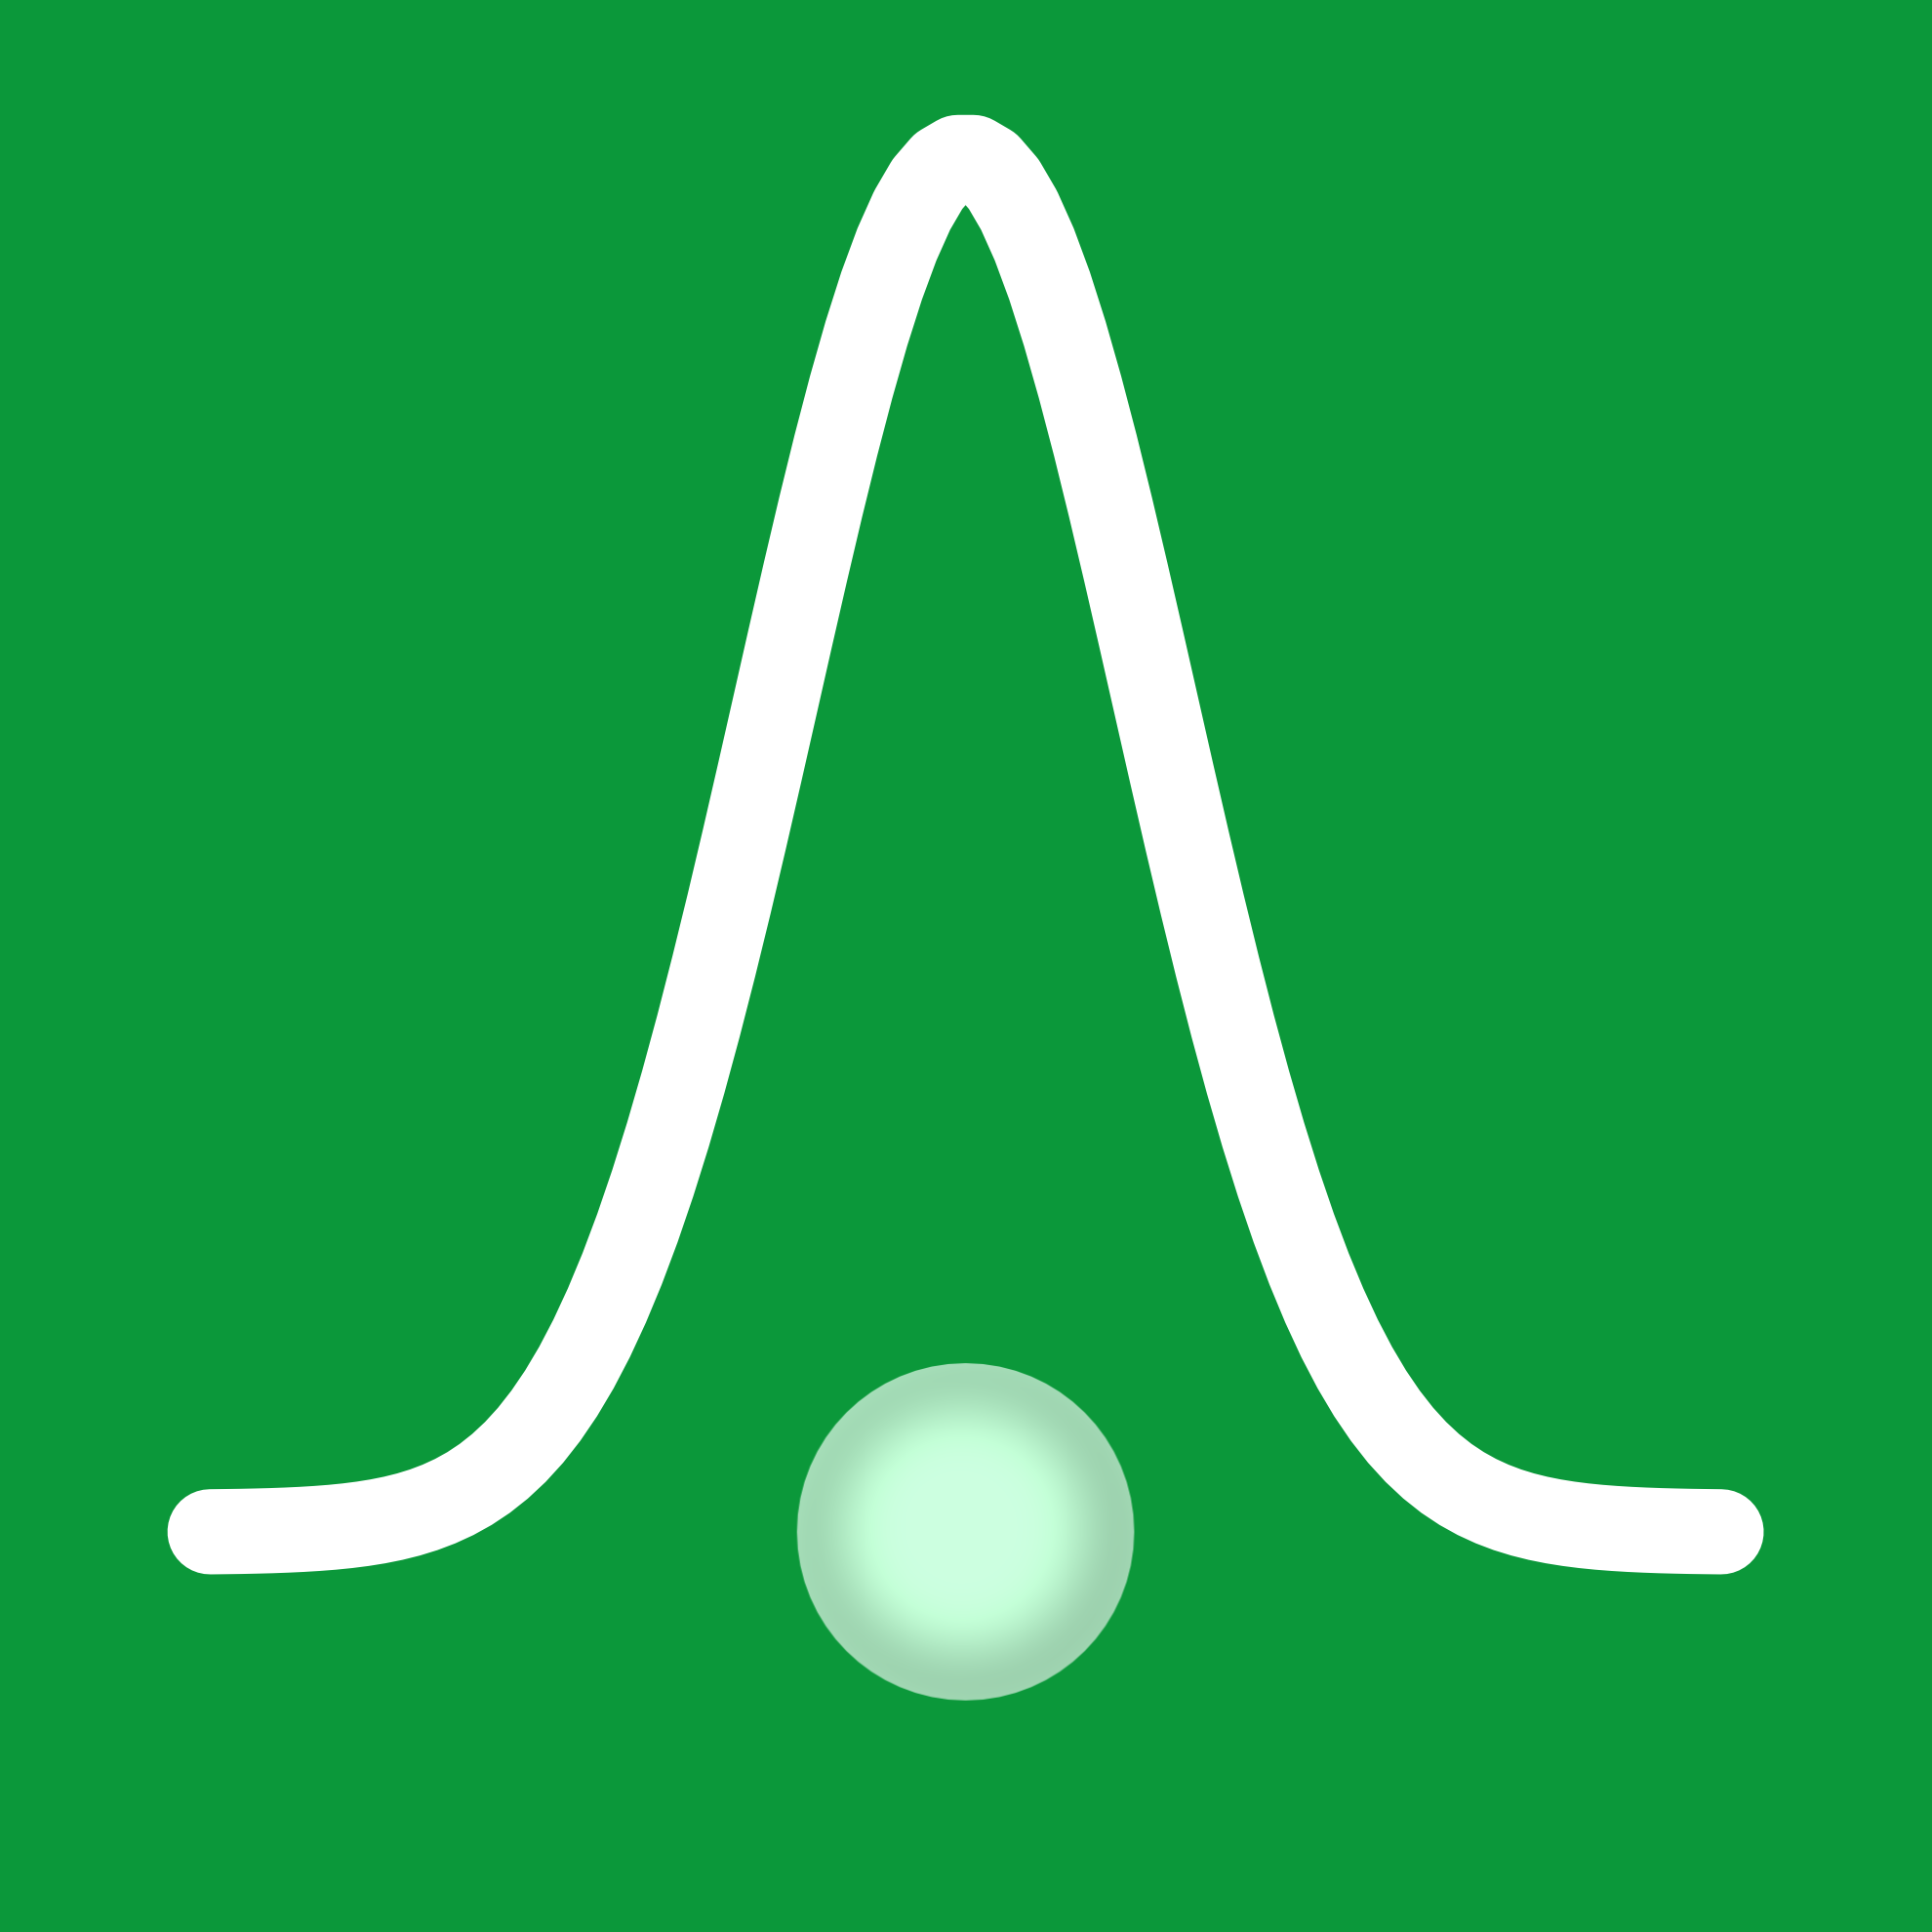 Point spread function test icon